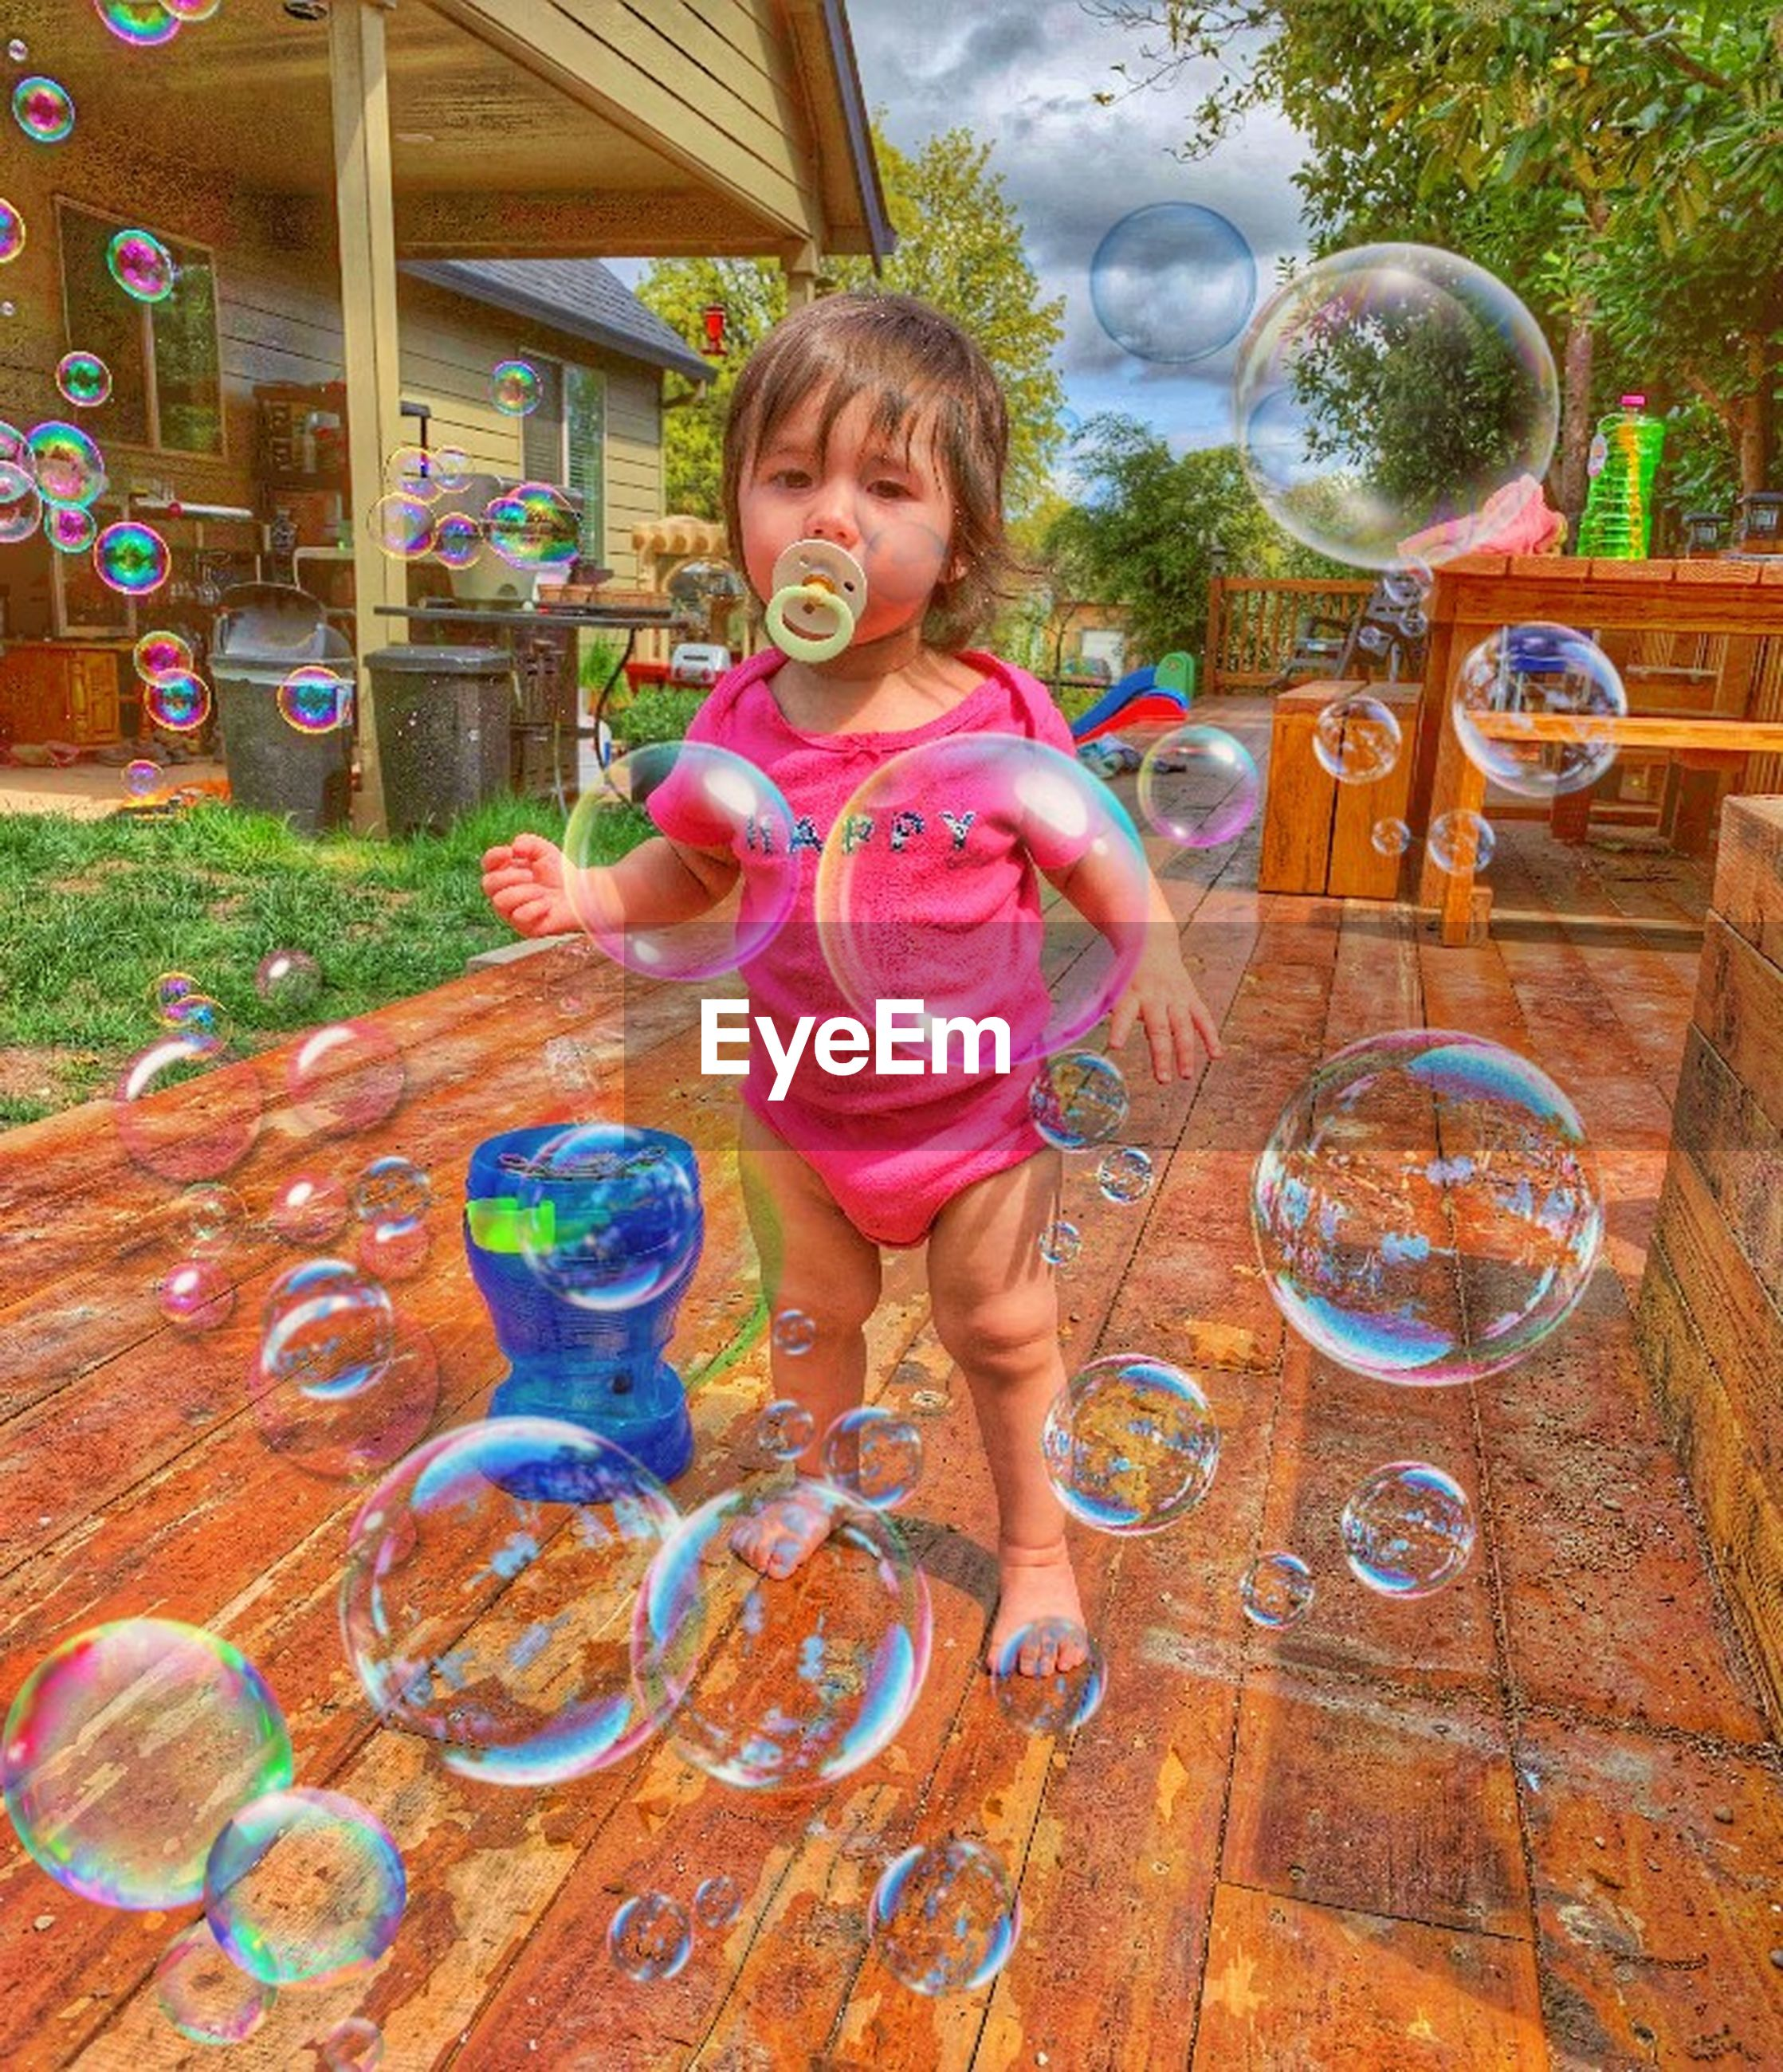 childhood, child, one person, full length, happiness, playing, enjoyment, smiling, fun, emotion, cheerful, bubble, innocence, multi colored, offspring, standing, day, portrait, casual clothing, outdoors